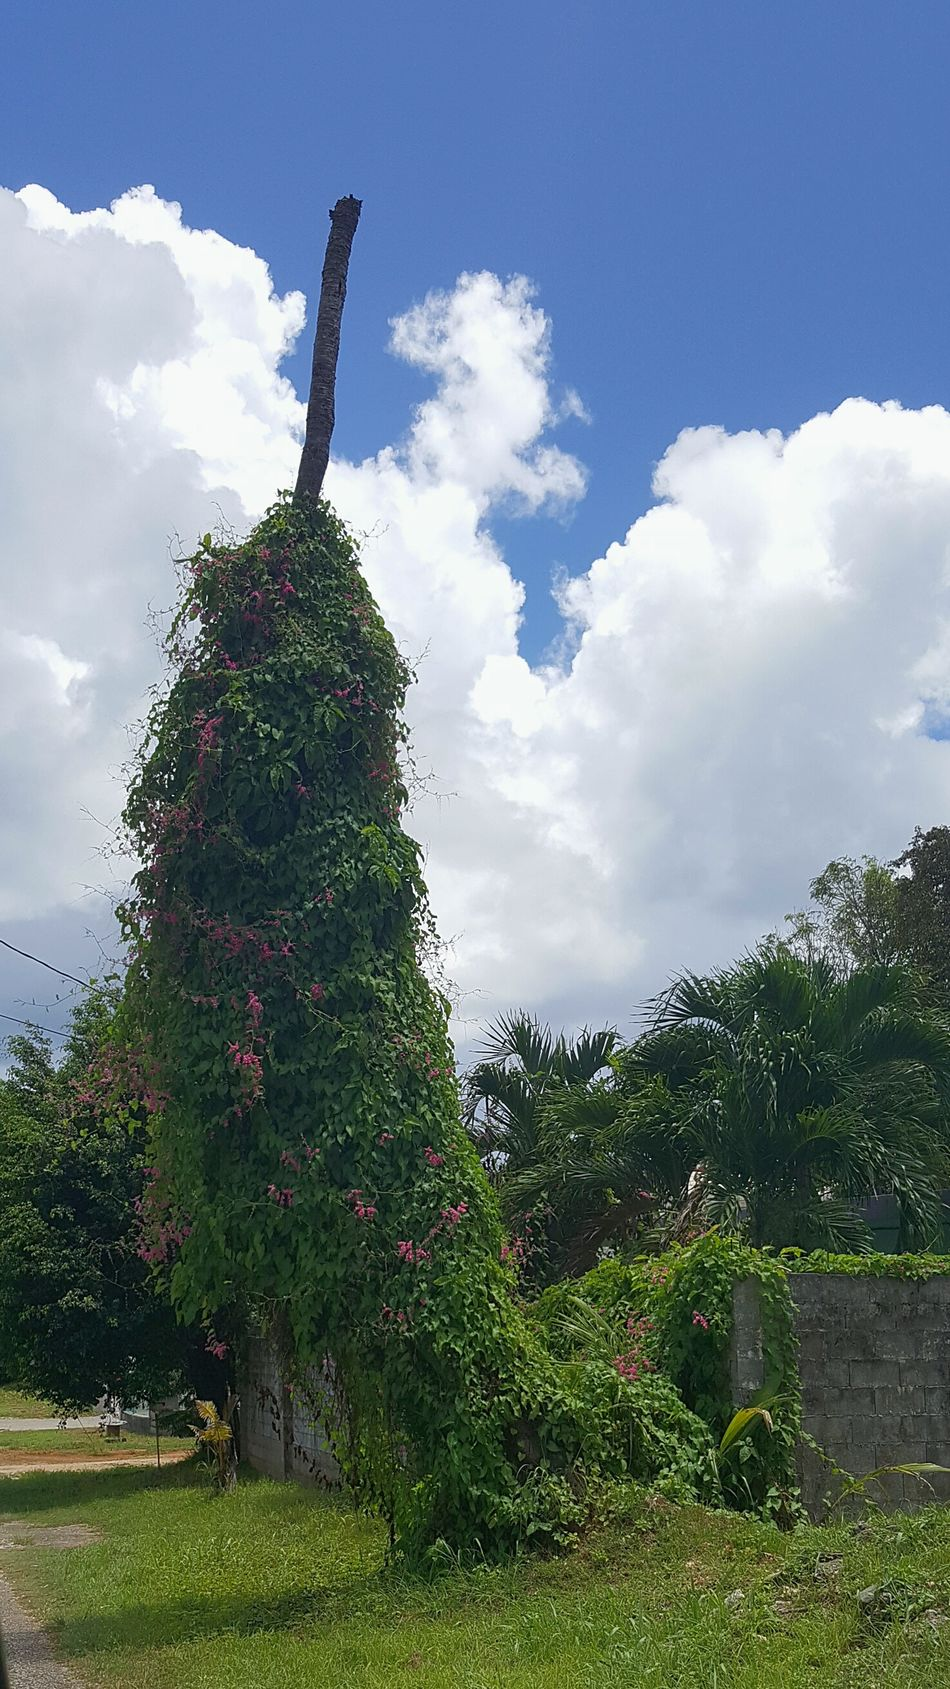 Nature Chillipepper Shaped Coconut Tree Vines On Trees